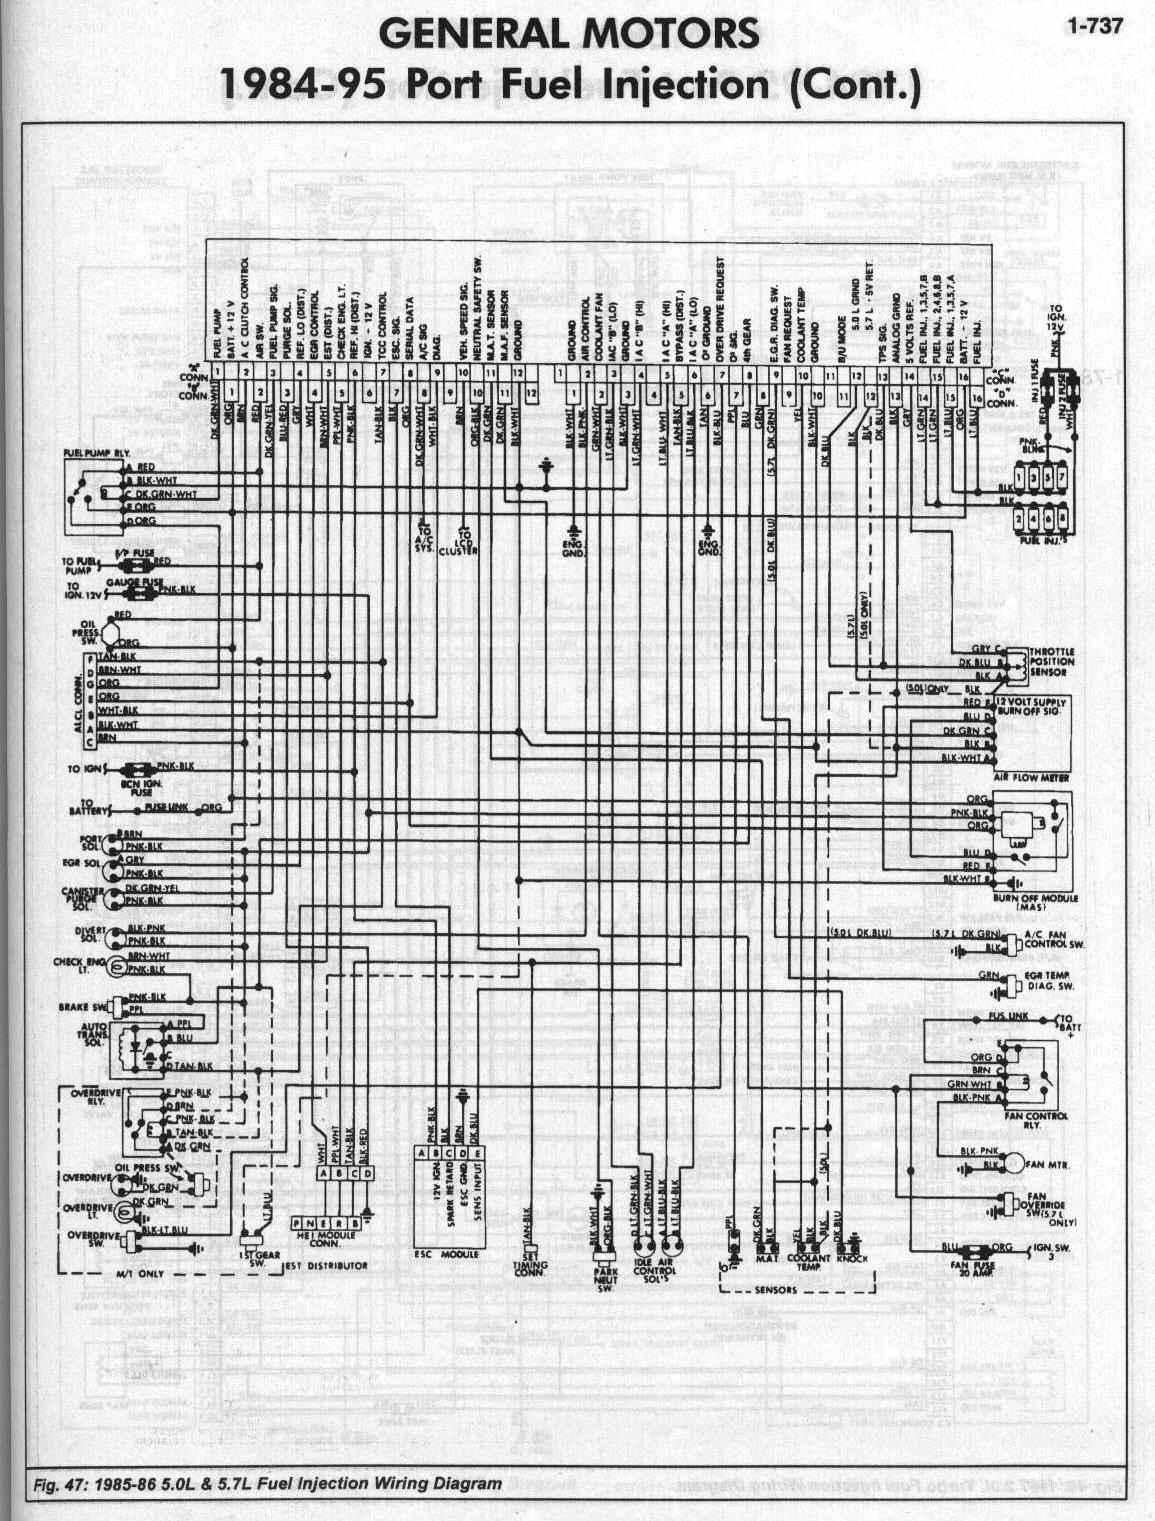 85 Chevy Camaro Wiring Diagram Free For You 79 Schematic My Z28 And Eprom Project Rh Eecis Udel Edu 95